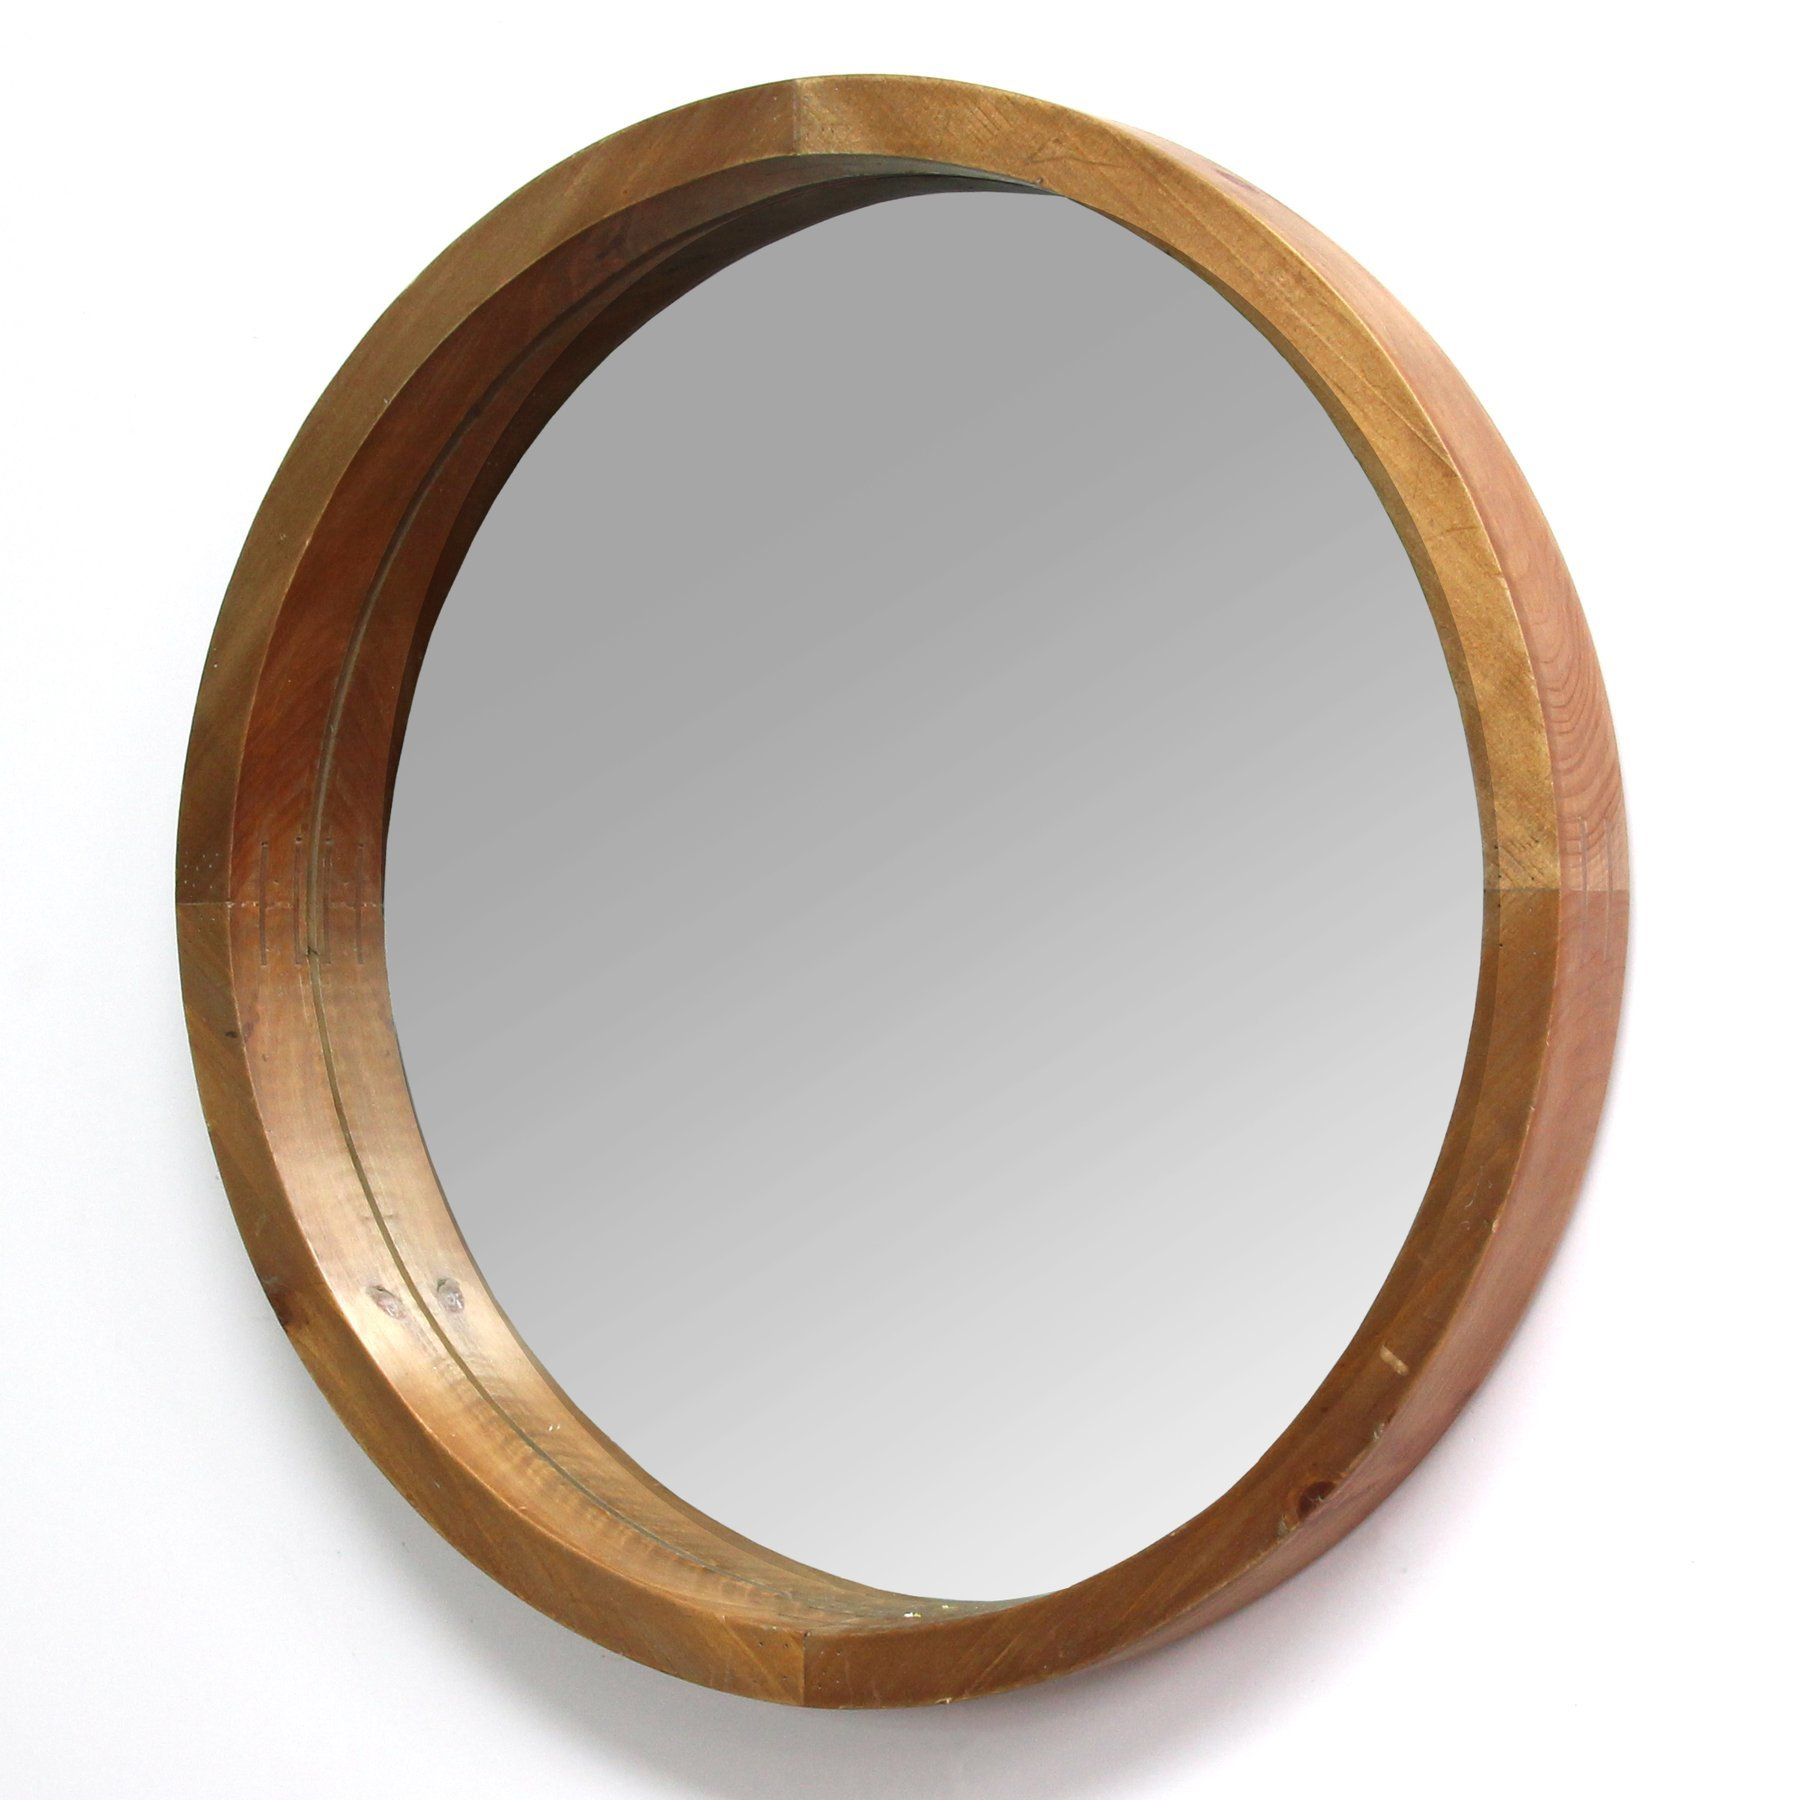 Coronado Wood Accent Mirror In Wood Accent Mirrors (View 6 of 30)